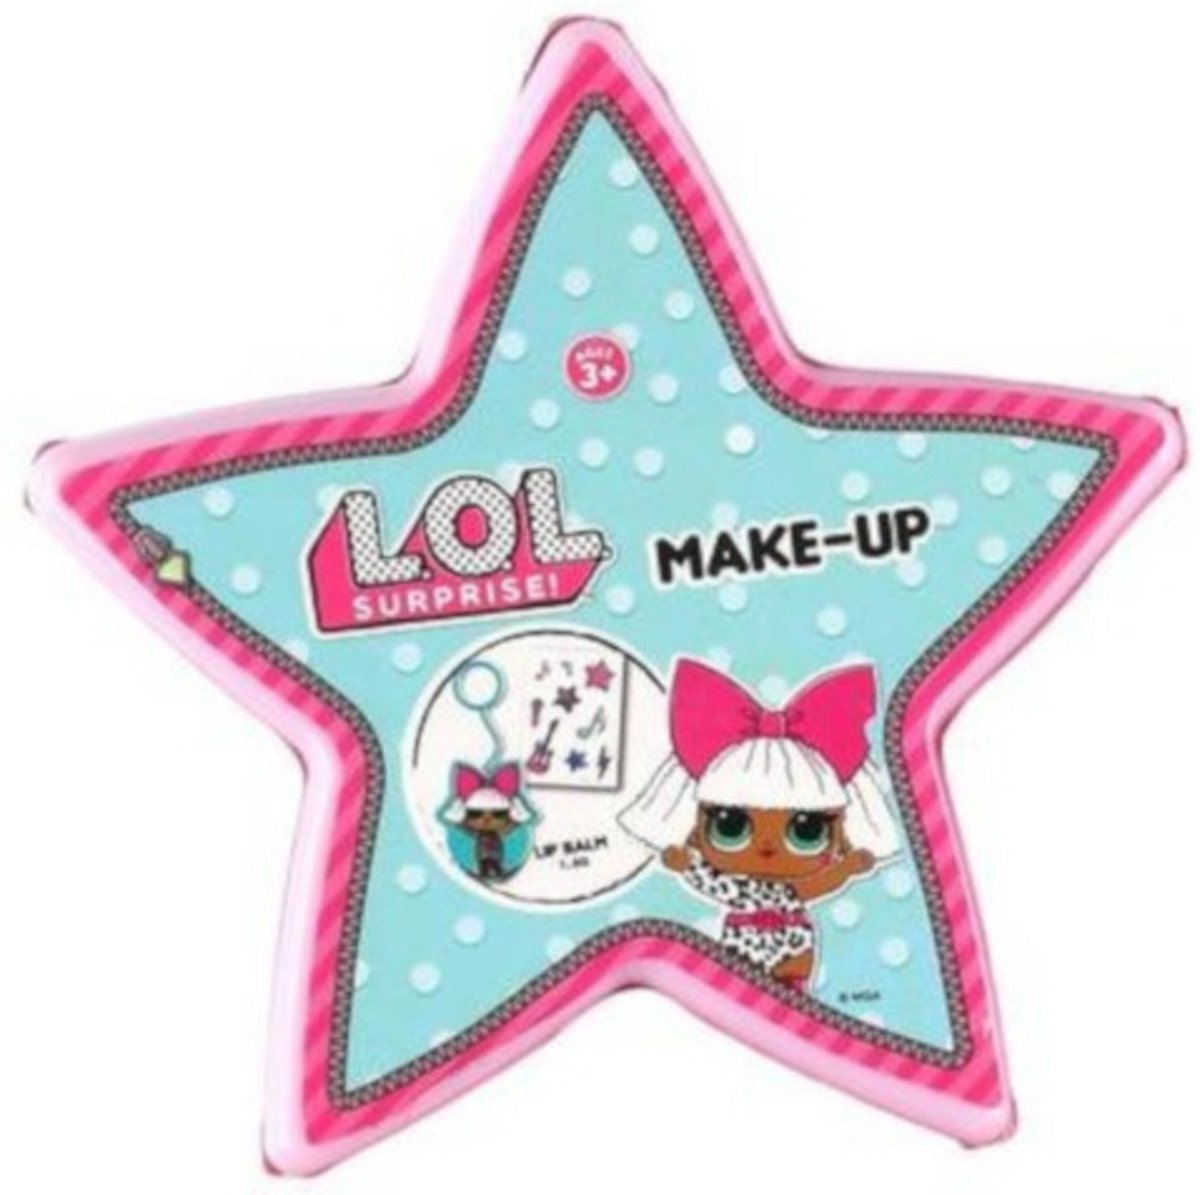 Toi-toys Make-upset L.o.l. Surprise Medium 10 Cm Roze (e)